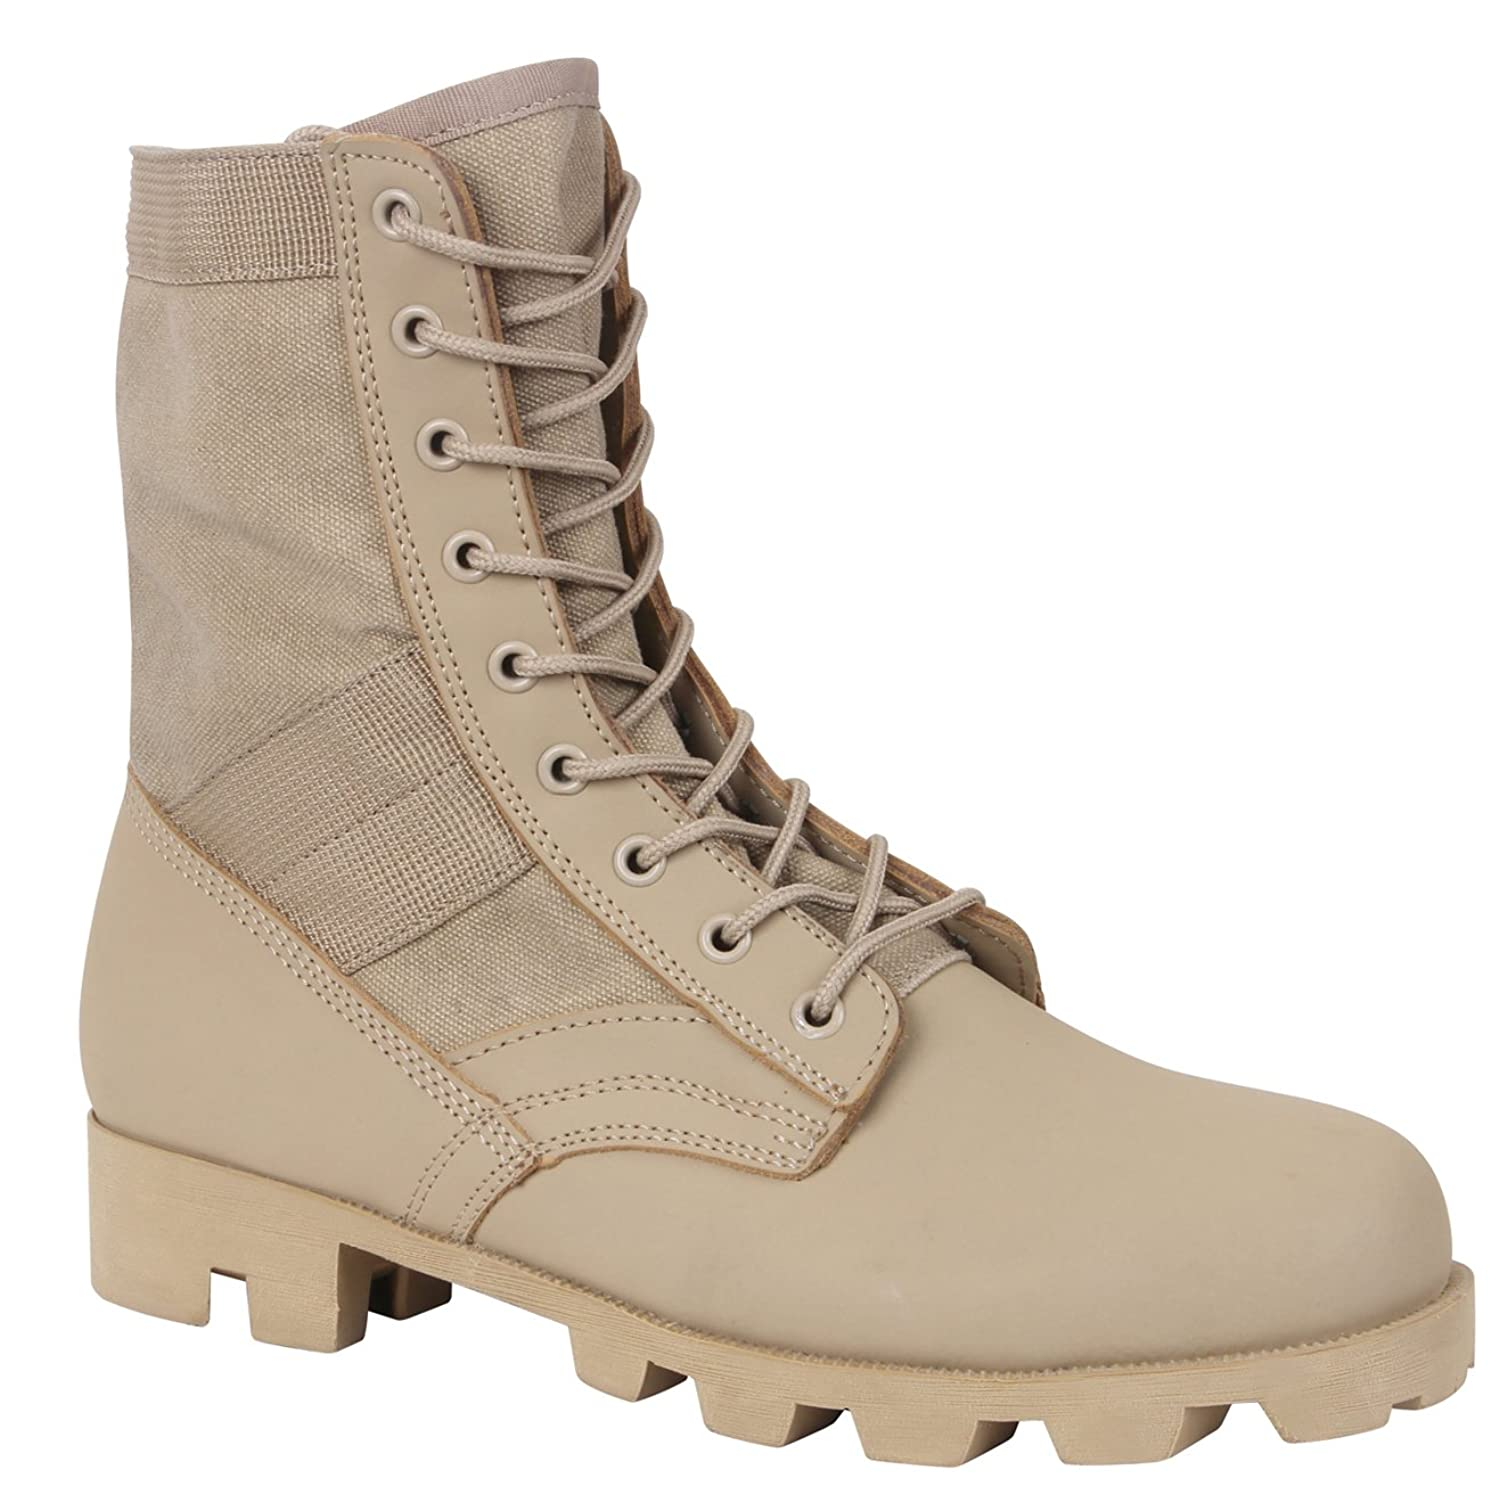 5c3239c7a89 Rothco 5909 Classic Military Jungle Boots - Desert Tan